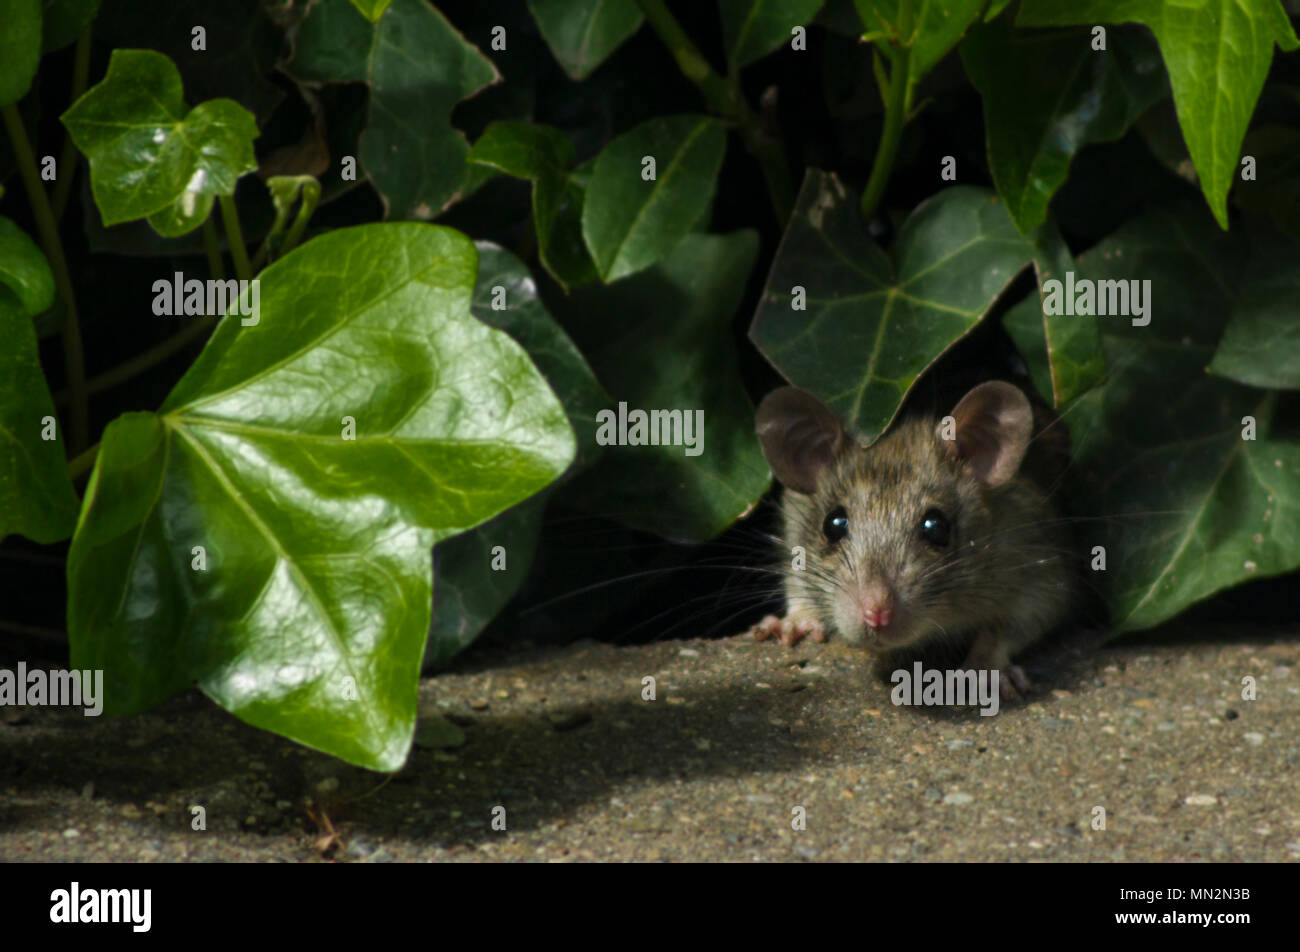 Cautious Adult Rat Peeping Out Of Hedge - Stock Image